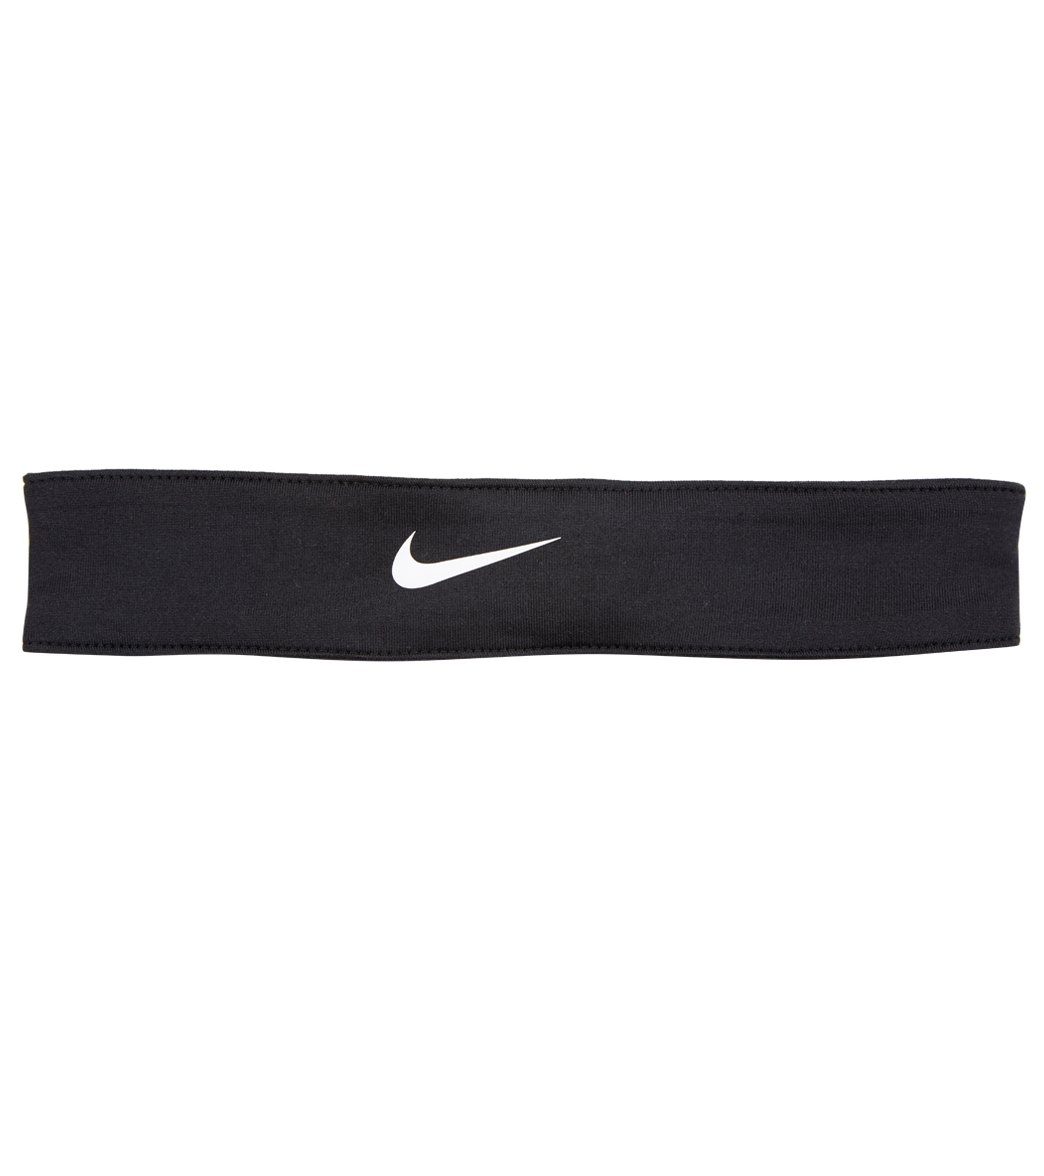 Nike Tapered Fury Headband at SwimOutlet.com 3d40c071293